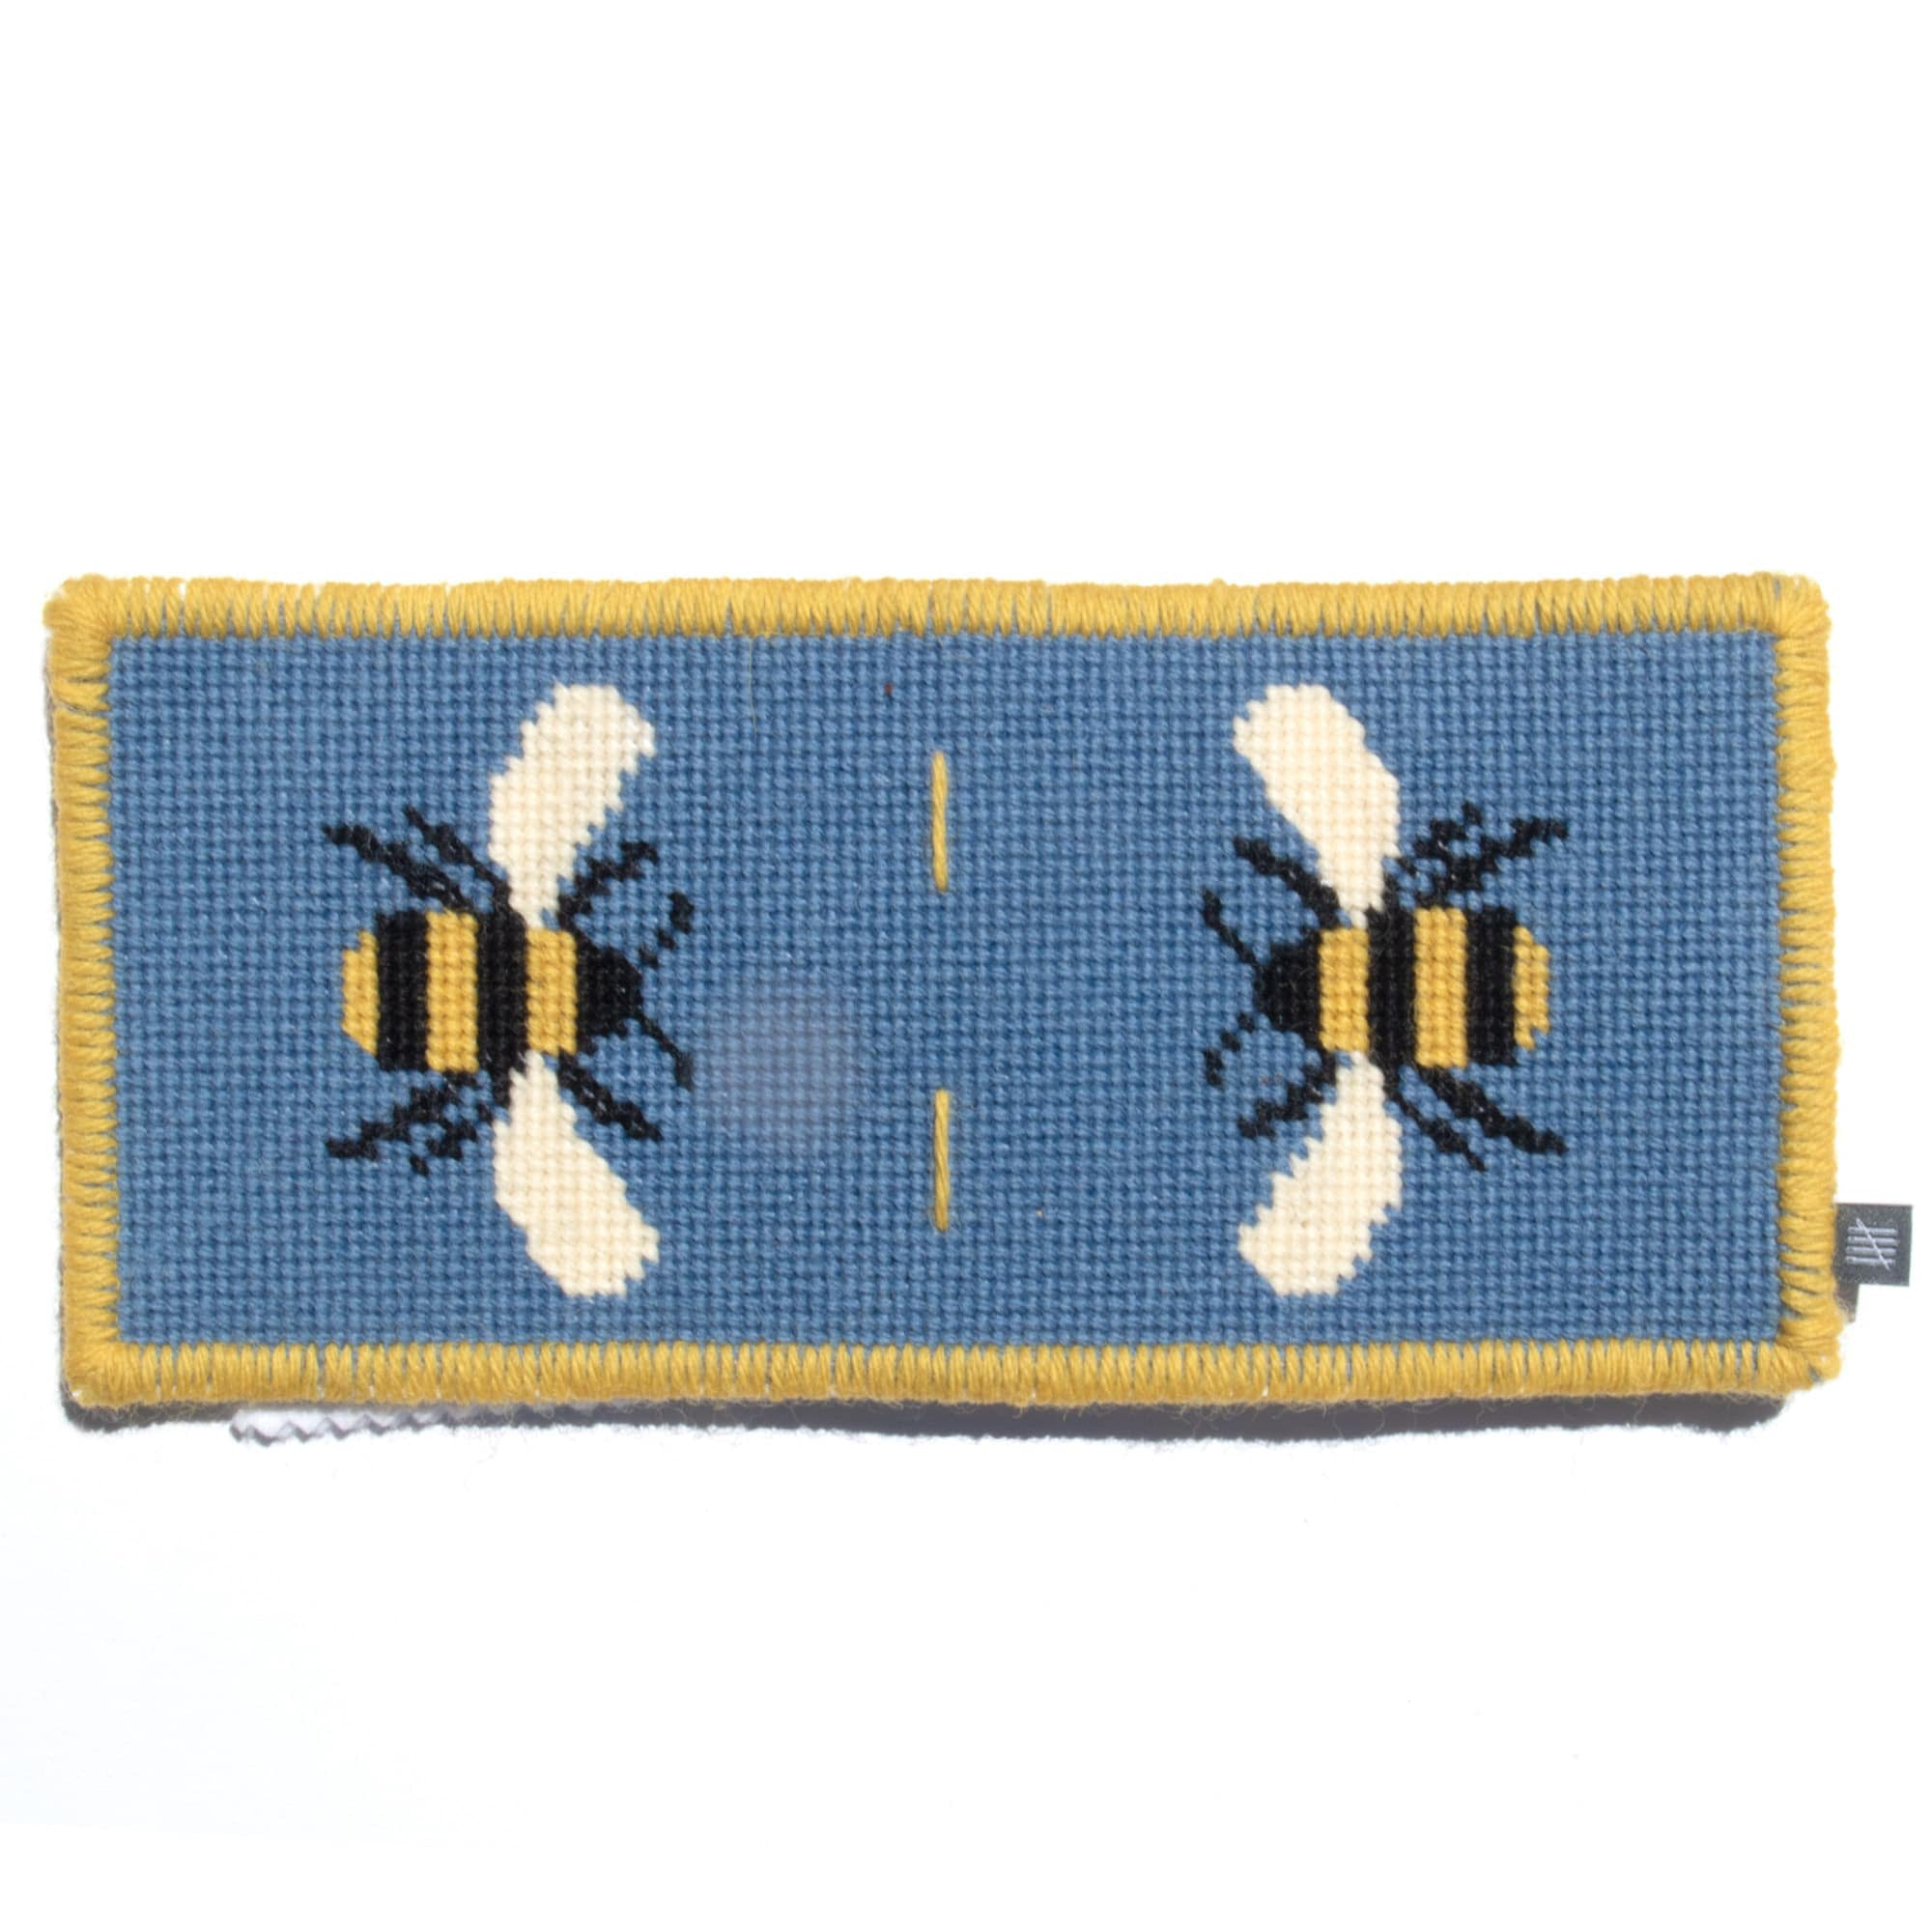 Fine Cell Work Needle Case Bee Design Blue Handmade Wool Needlepoint